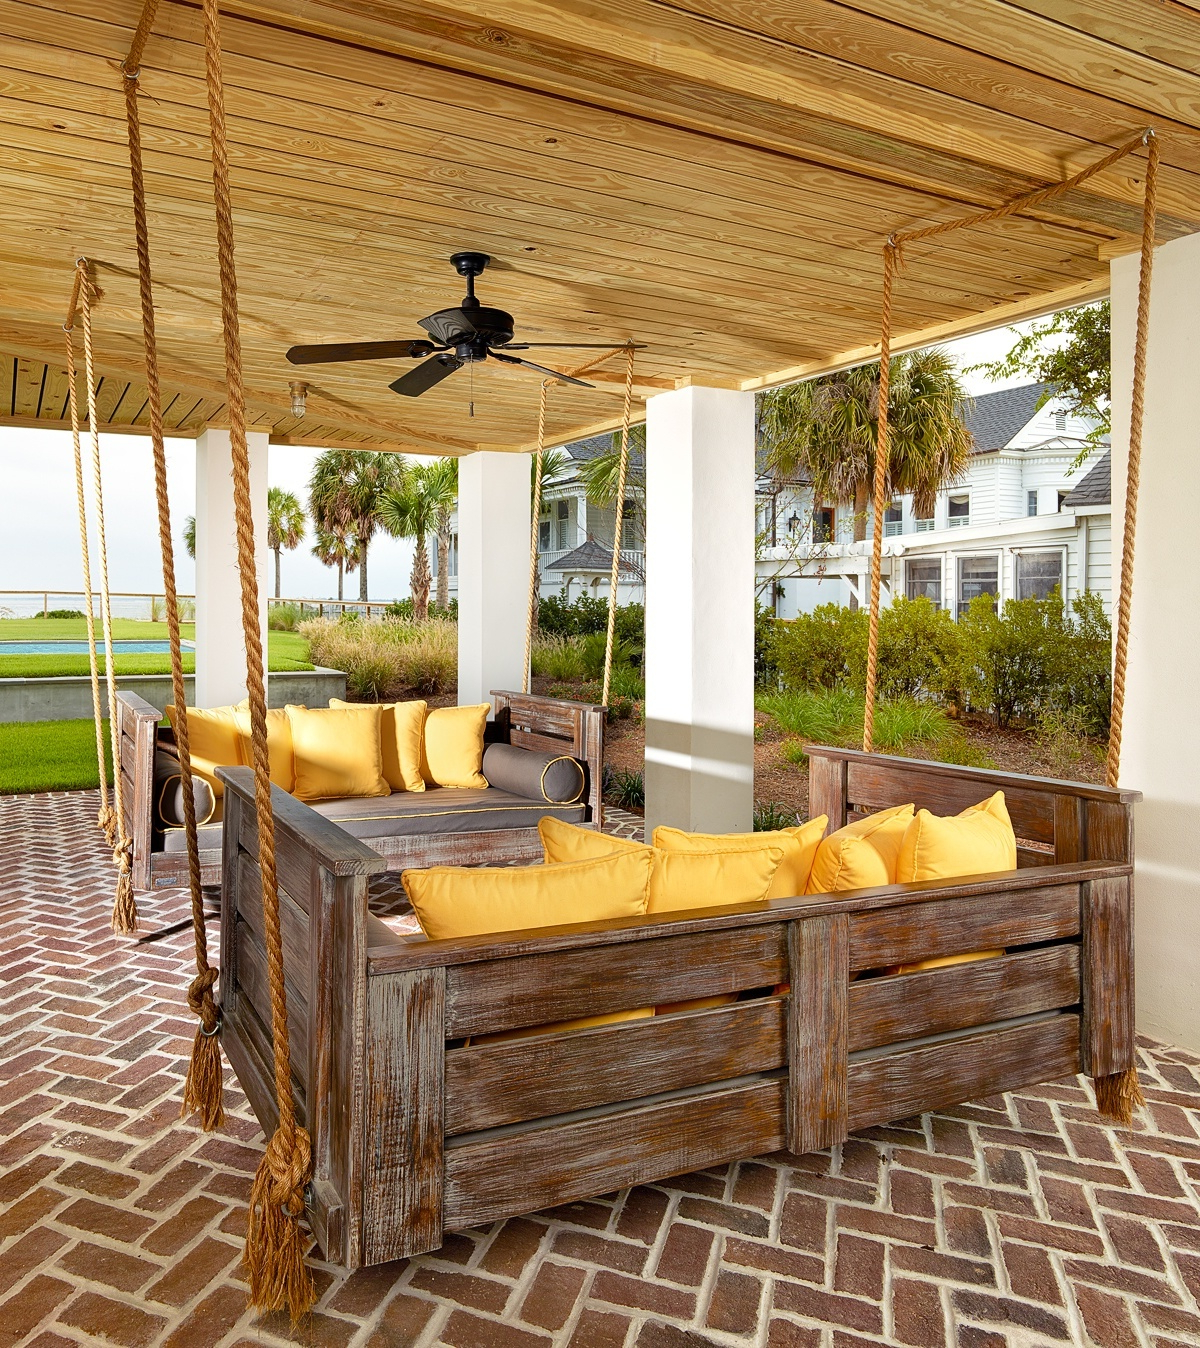 Day Bed Porch Swings Within Recent Inspirations: Enjoy Your All Day With Cozy Wooden Porch (View 24 of 30)